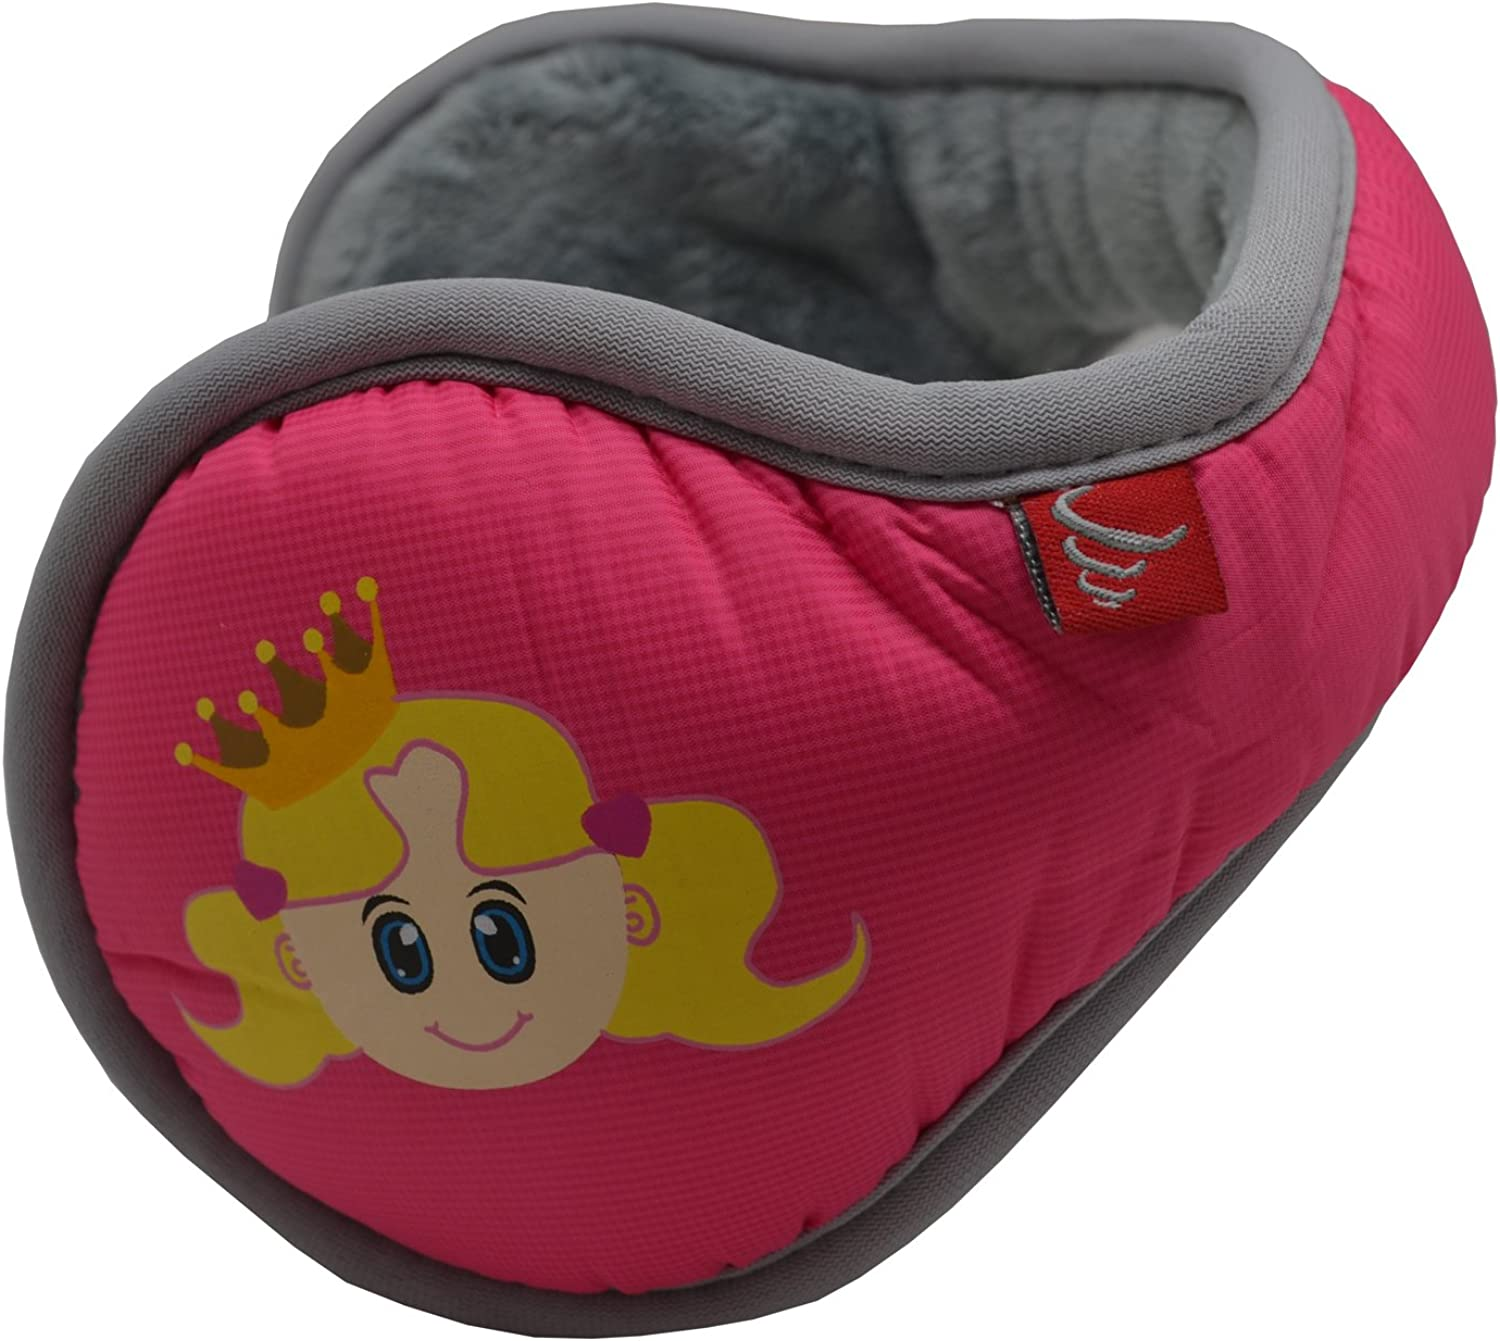 Mraw Child Foldable Wrap Earmuffs Ranking integrated 1st place around Memphis Mall